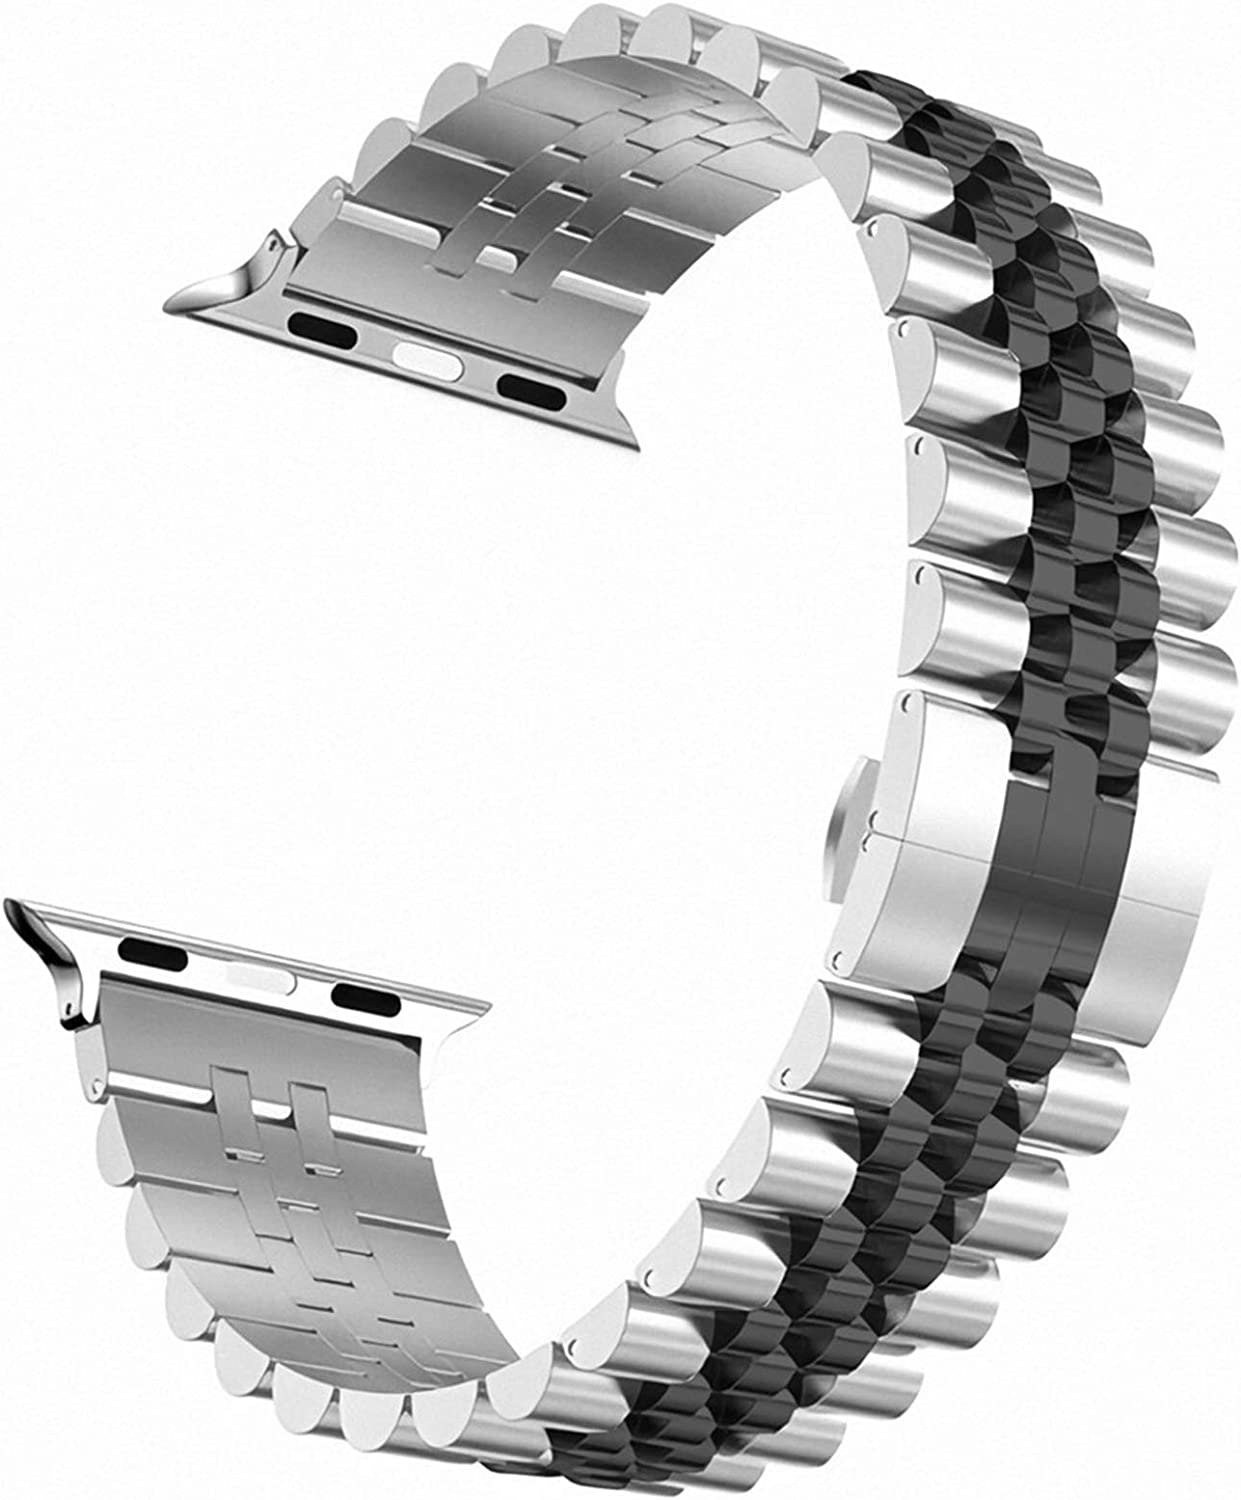 JJRRPA Wristband for Watch 6 Bracelet 40mm 38mm Stainless Sale Max 79% OFF special price Steel